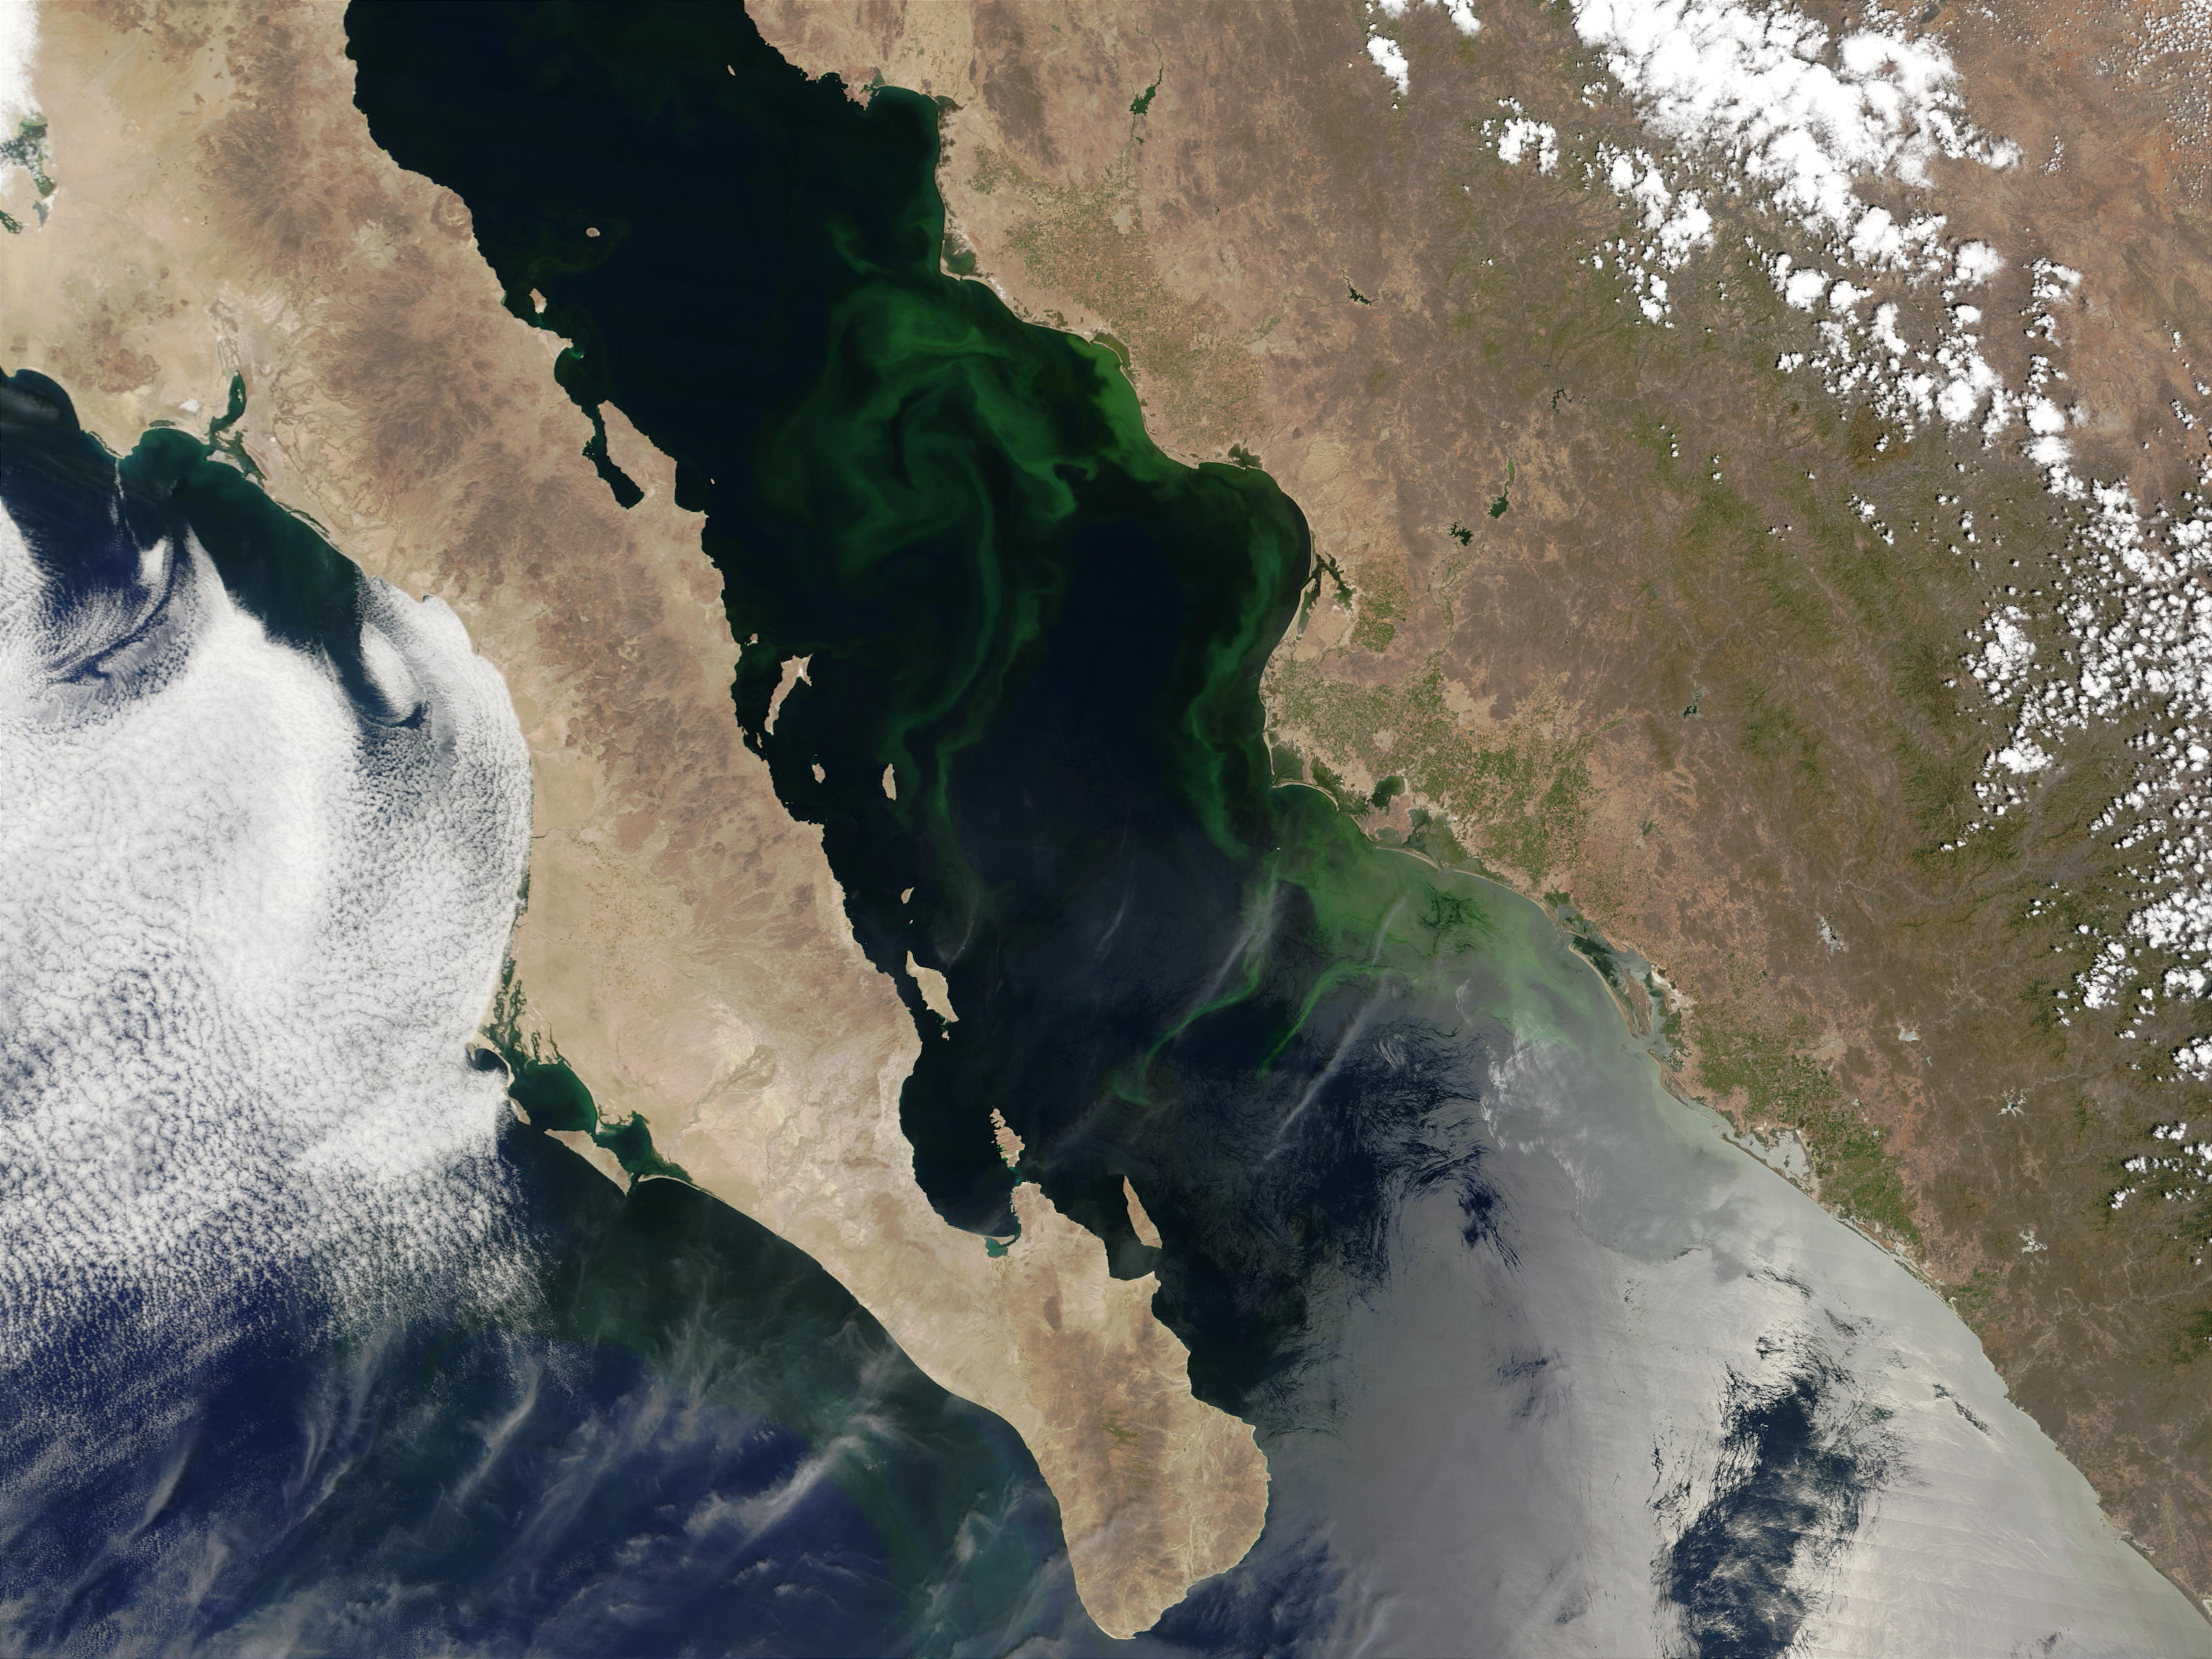 Phytoplankton bloom in Gulf of California, Mexico - related image preview